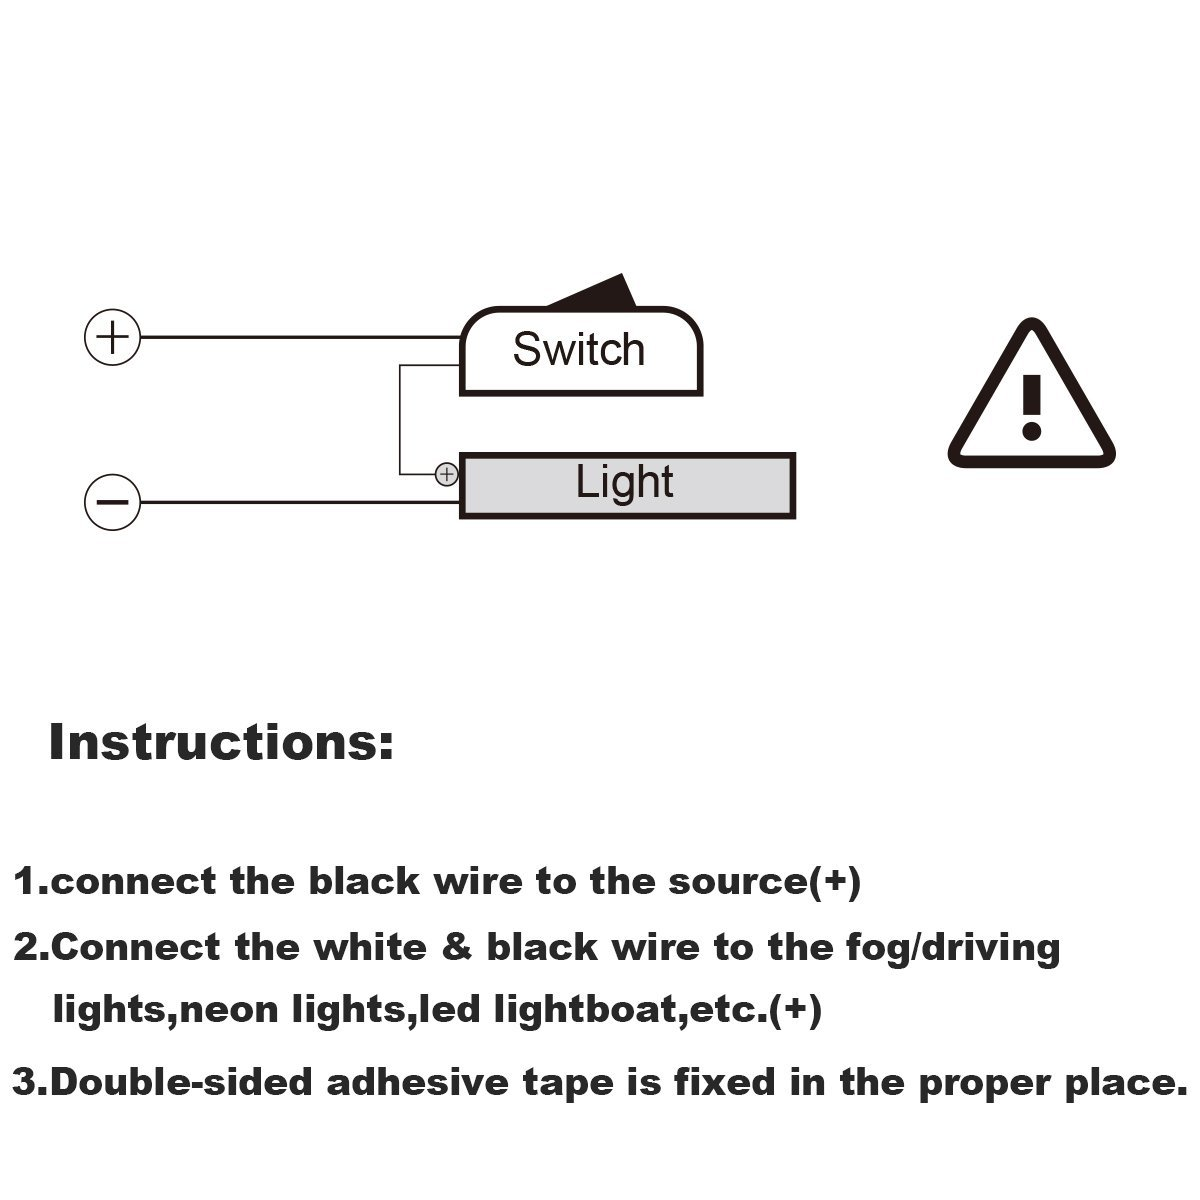 Car Push Button Switch Diy Off On Universal Dc12v Light Wiring Along With Led Diagram Together Driving For Fog Lights Neon Bar Etc Automotive